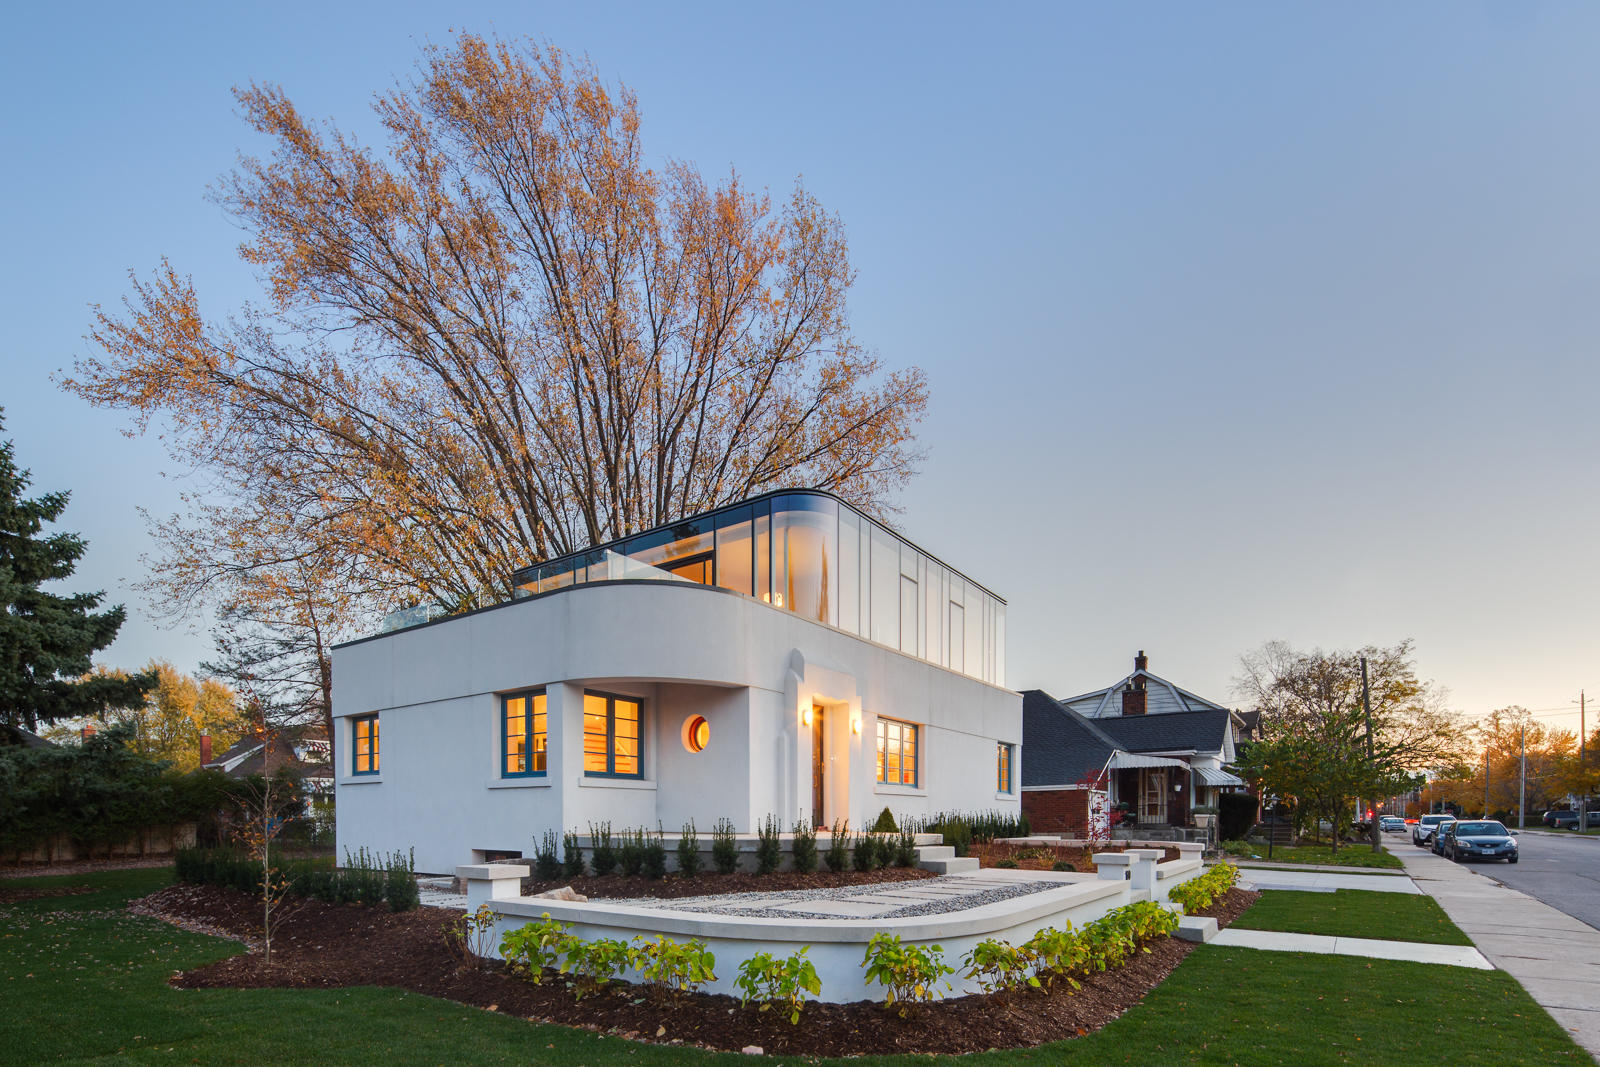 A Modern Art Deco Home Visualized In Two Styles: A Restored Heritage Home With Art Moderne Architecture